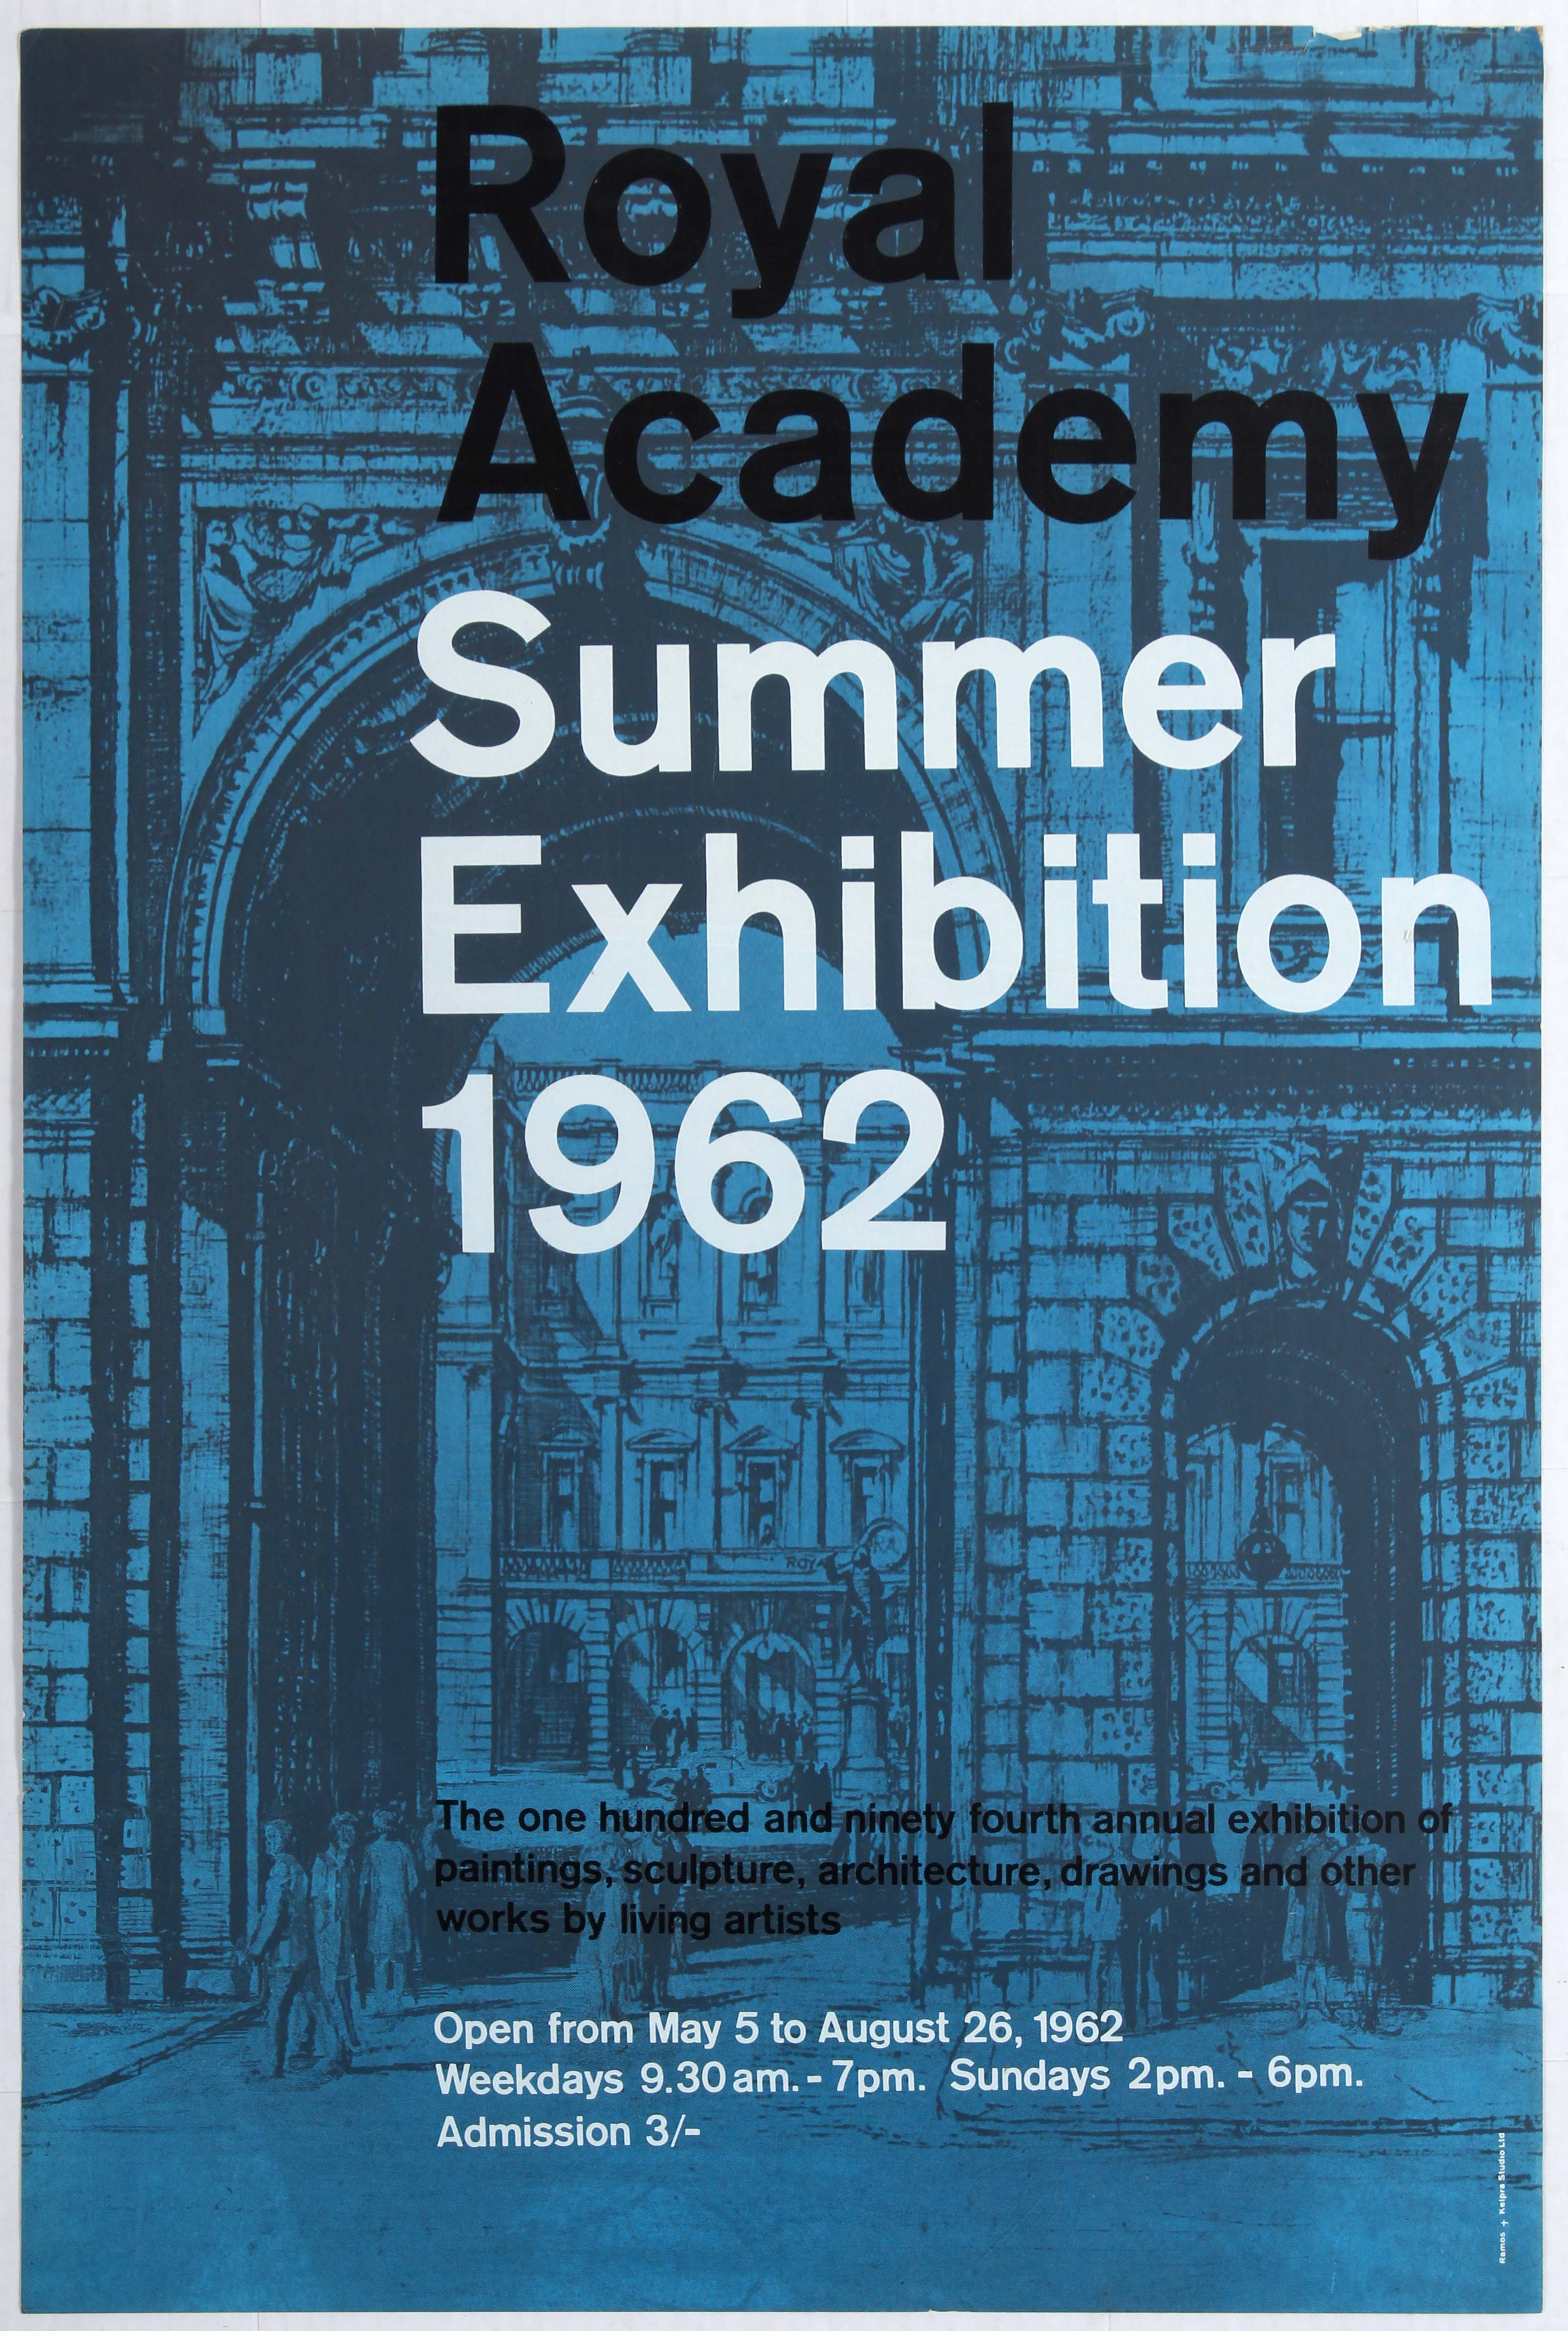 Lot 1617 - Advertising Poster Royal Academy Summer Exhibition 1962.